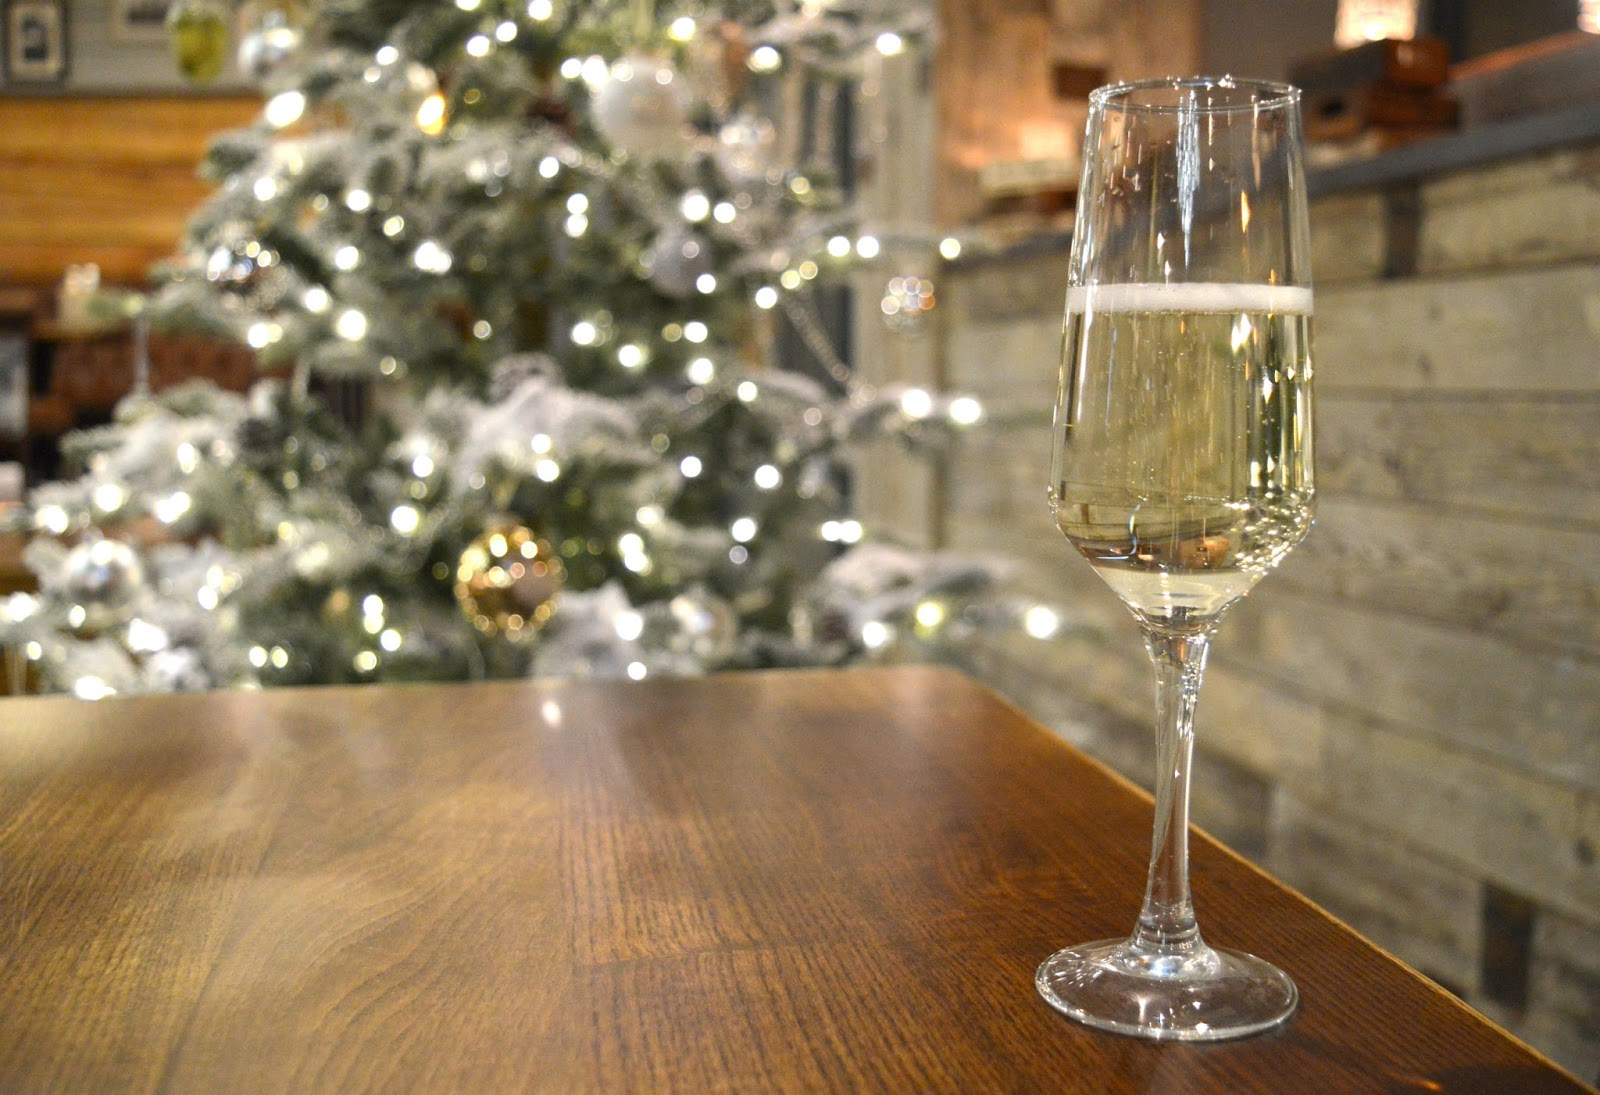 Christmas at the Jolly Fisherman on the Quayside - Prosecco